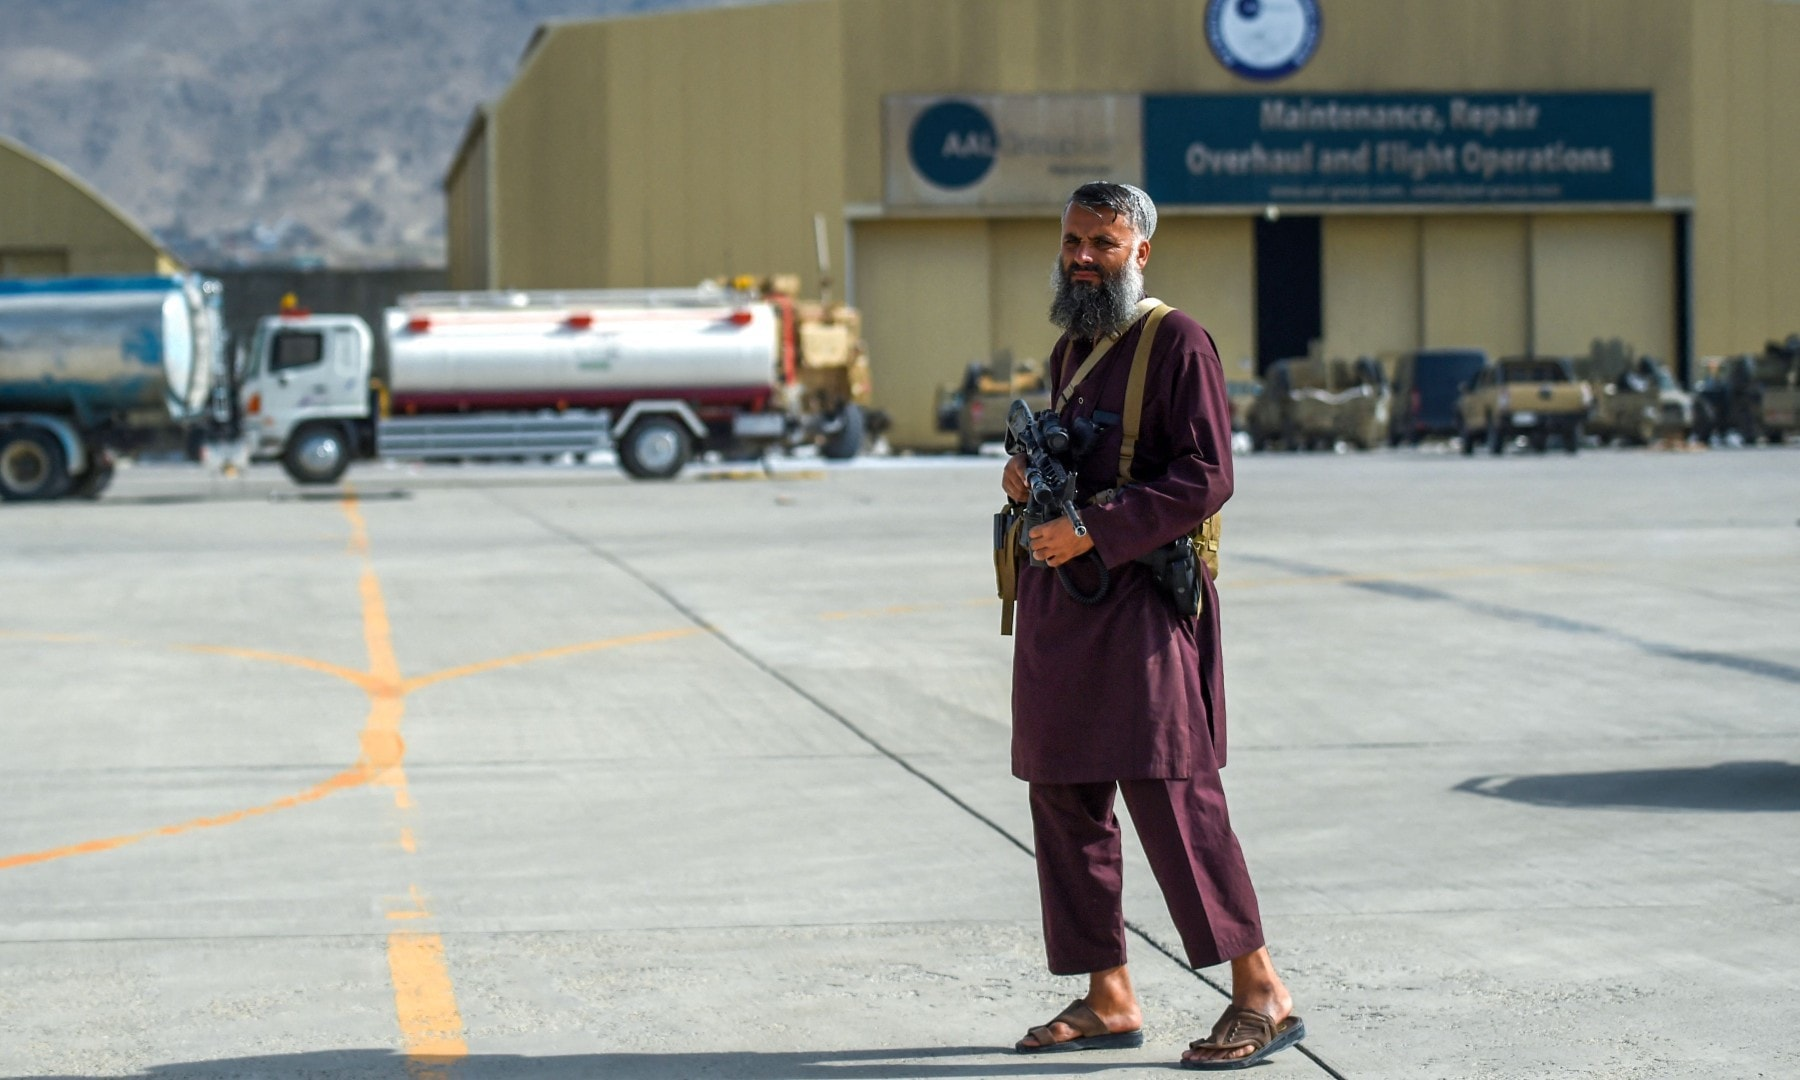 A Taliban fighter stands guard at the airport in Kabul on August 31. — AFP